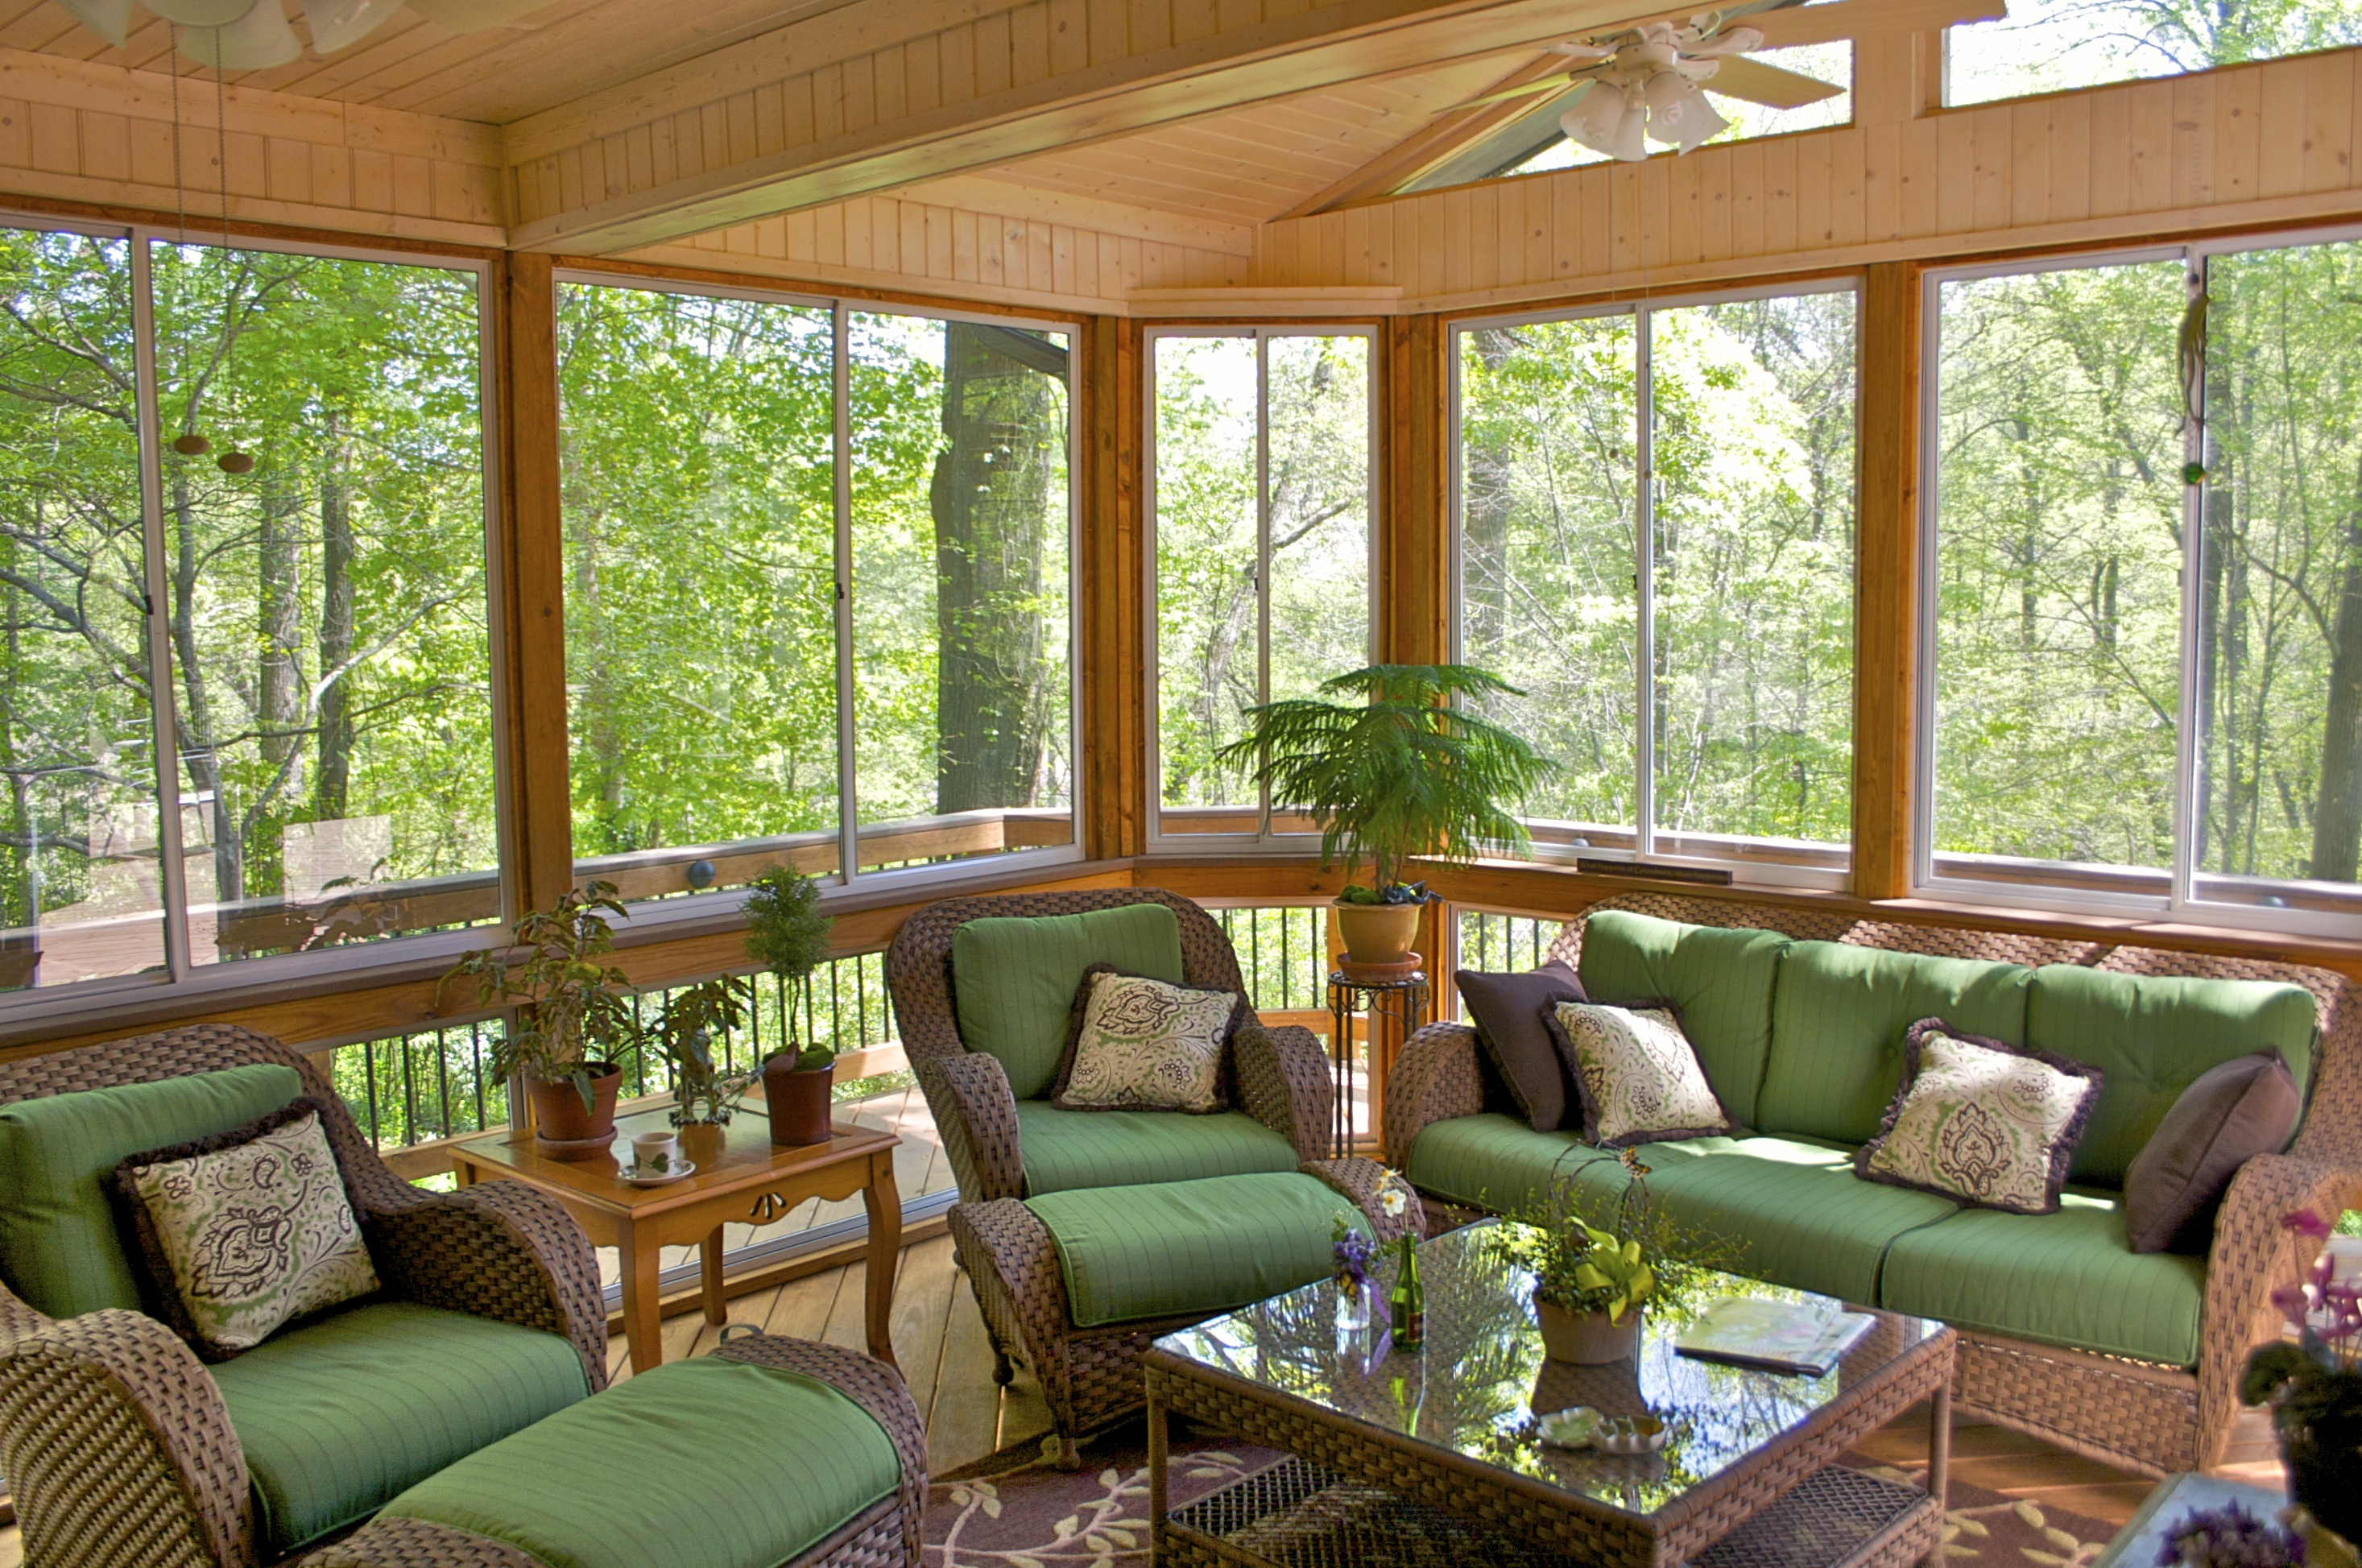 Porch Vs Deck Which Is The More Befitting For Your Home: Jim Topolski